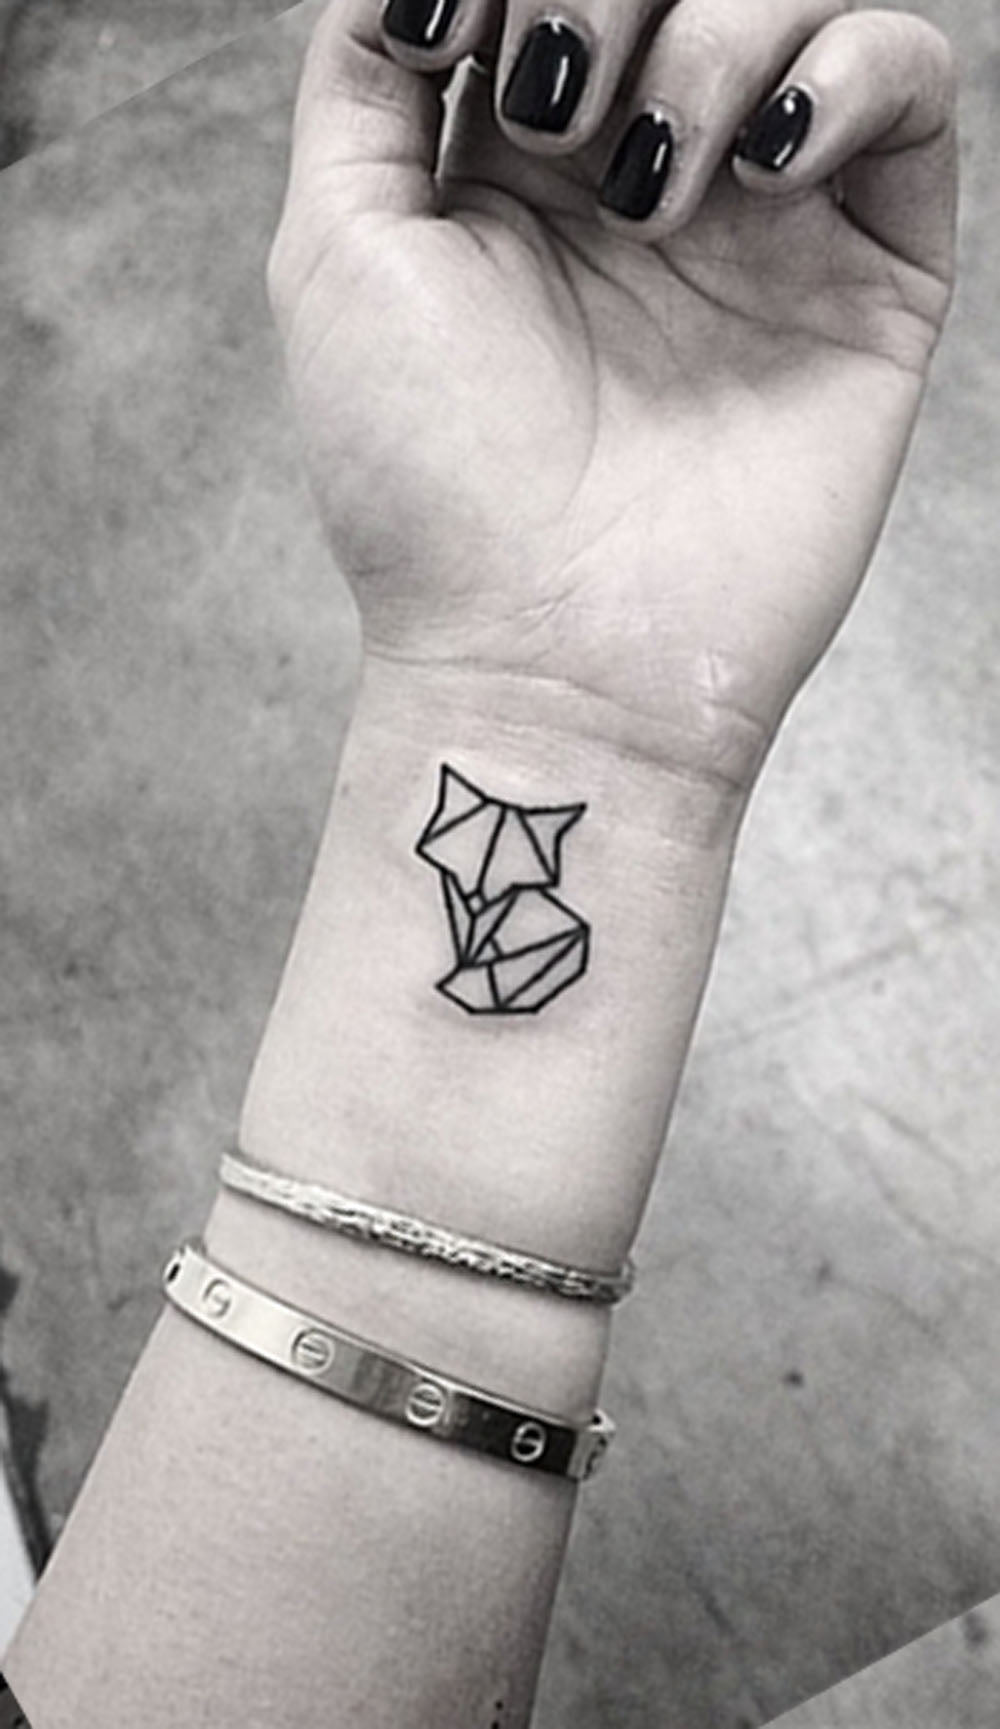 Small Minimal Geometric Wrist Arm Cat Fox Nature Tattoo Ideas for Women -  Ideas geométricas del tatuaje de la muñeca del gato para las mujeres - www.MyBodiArt.com